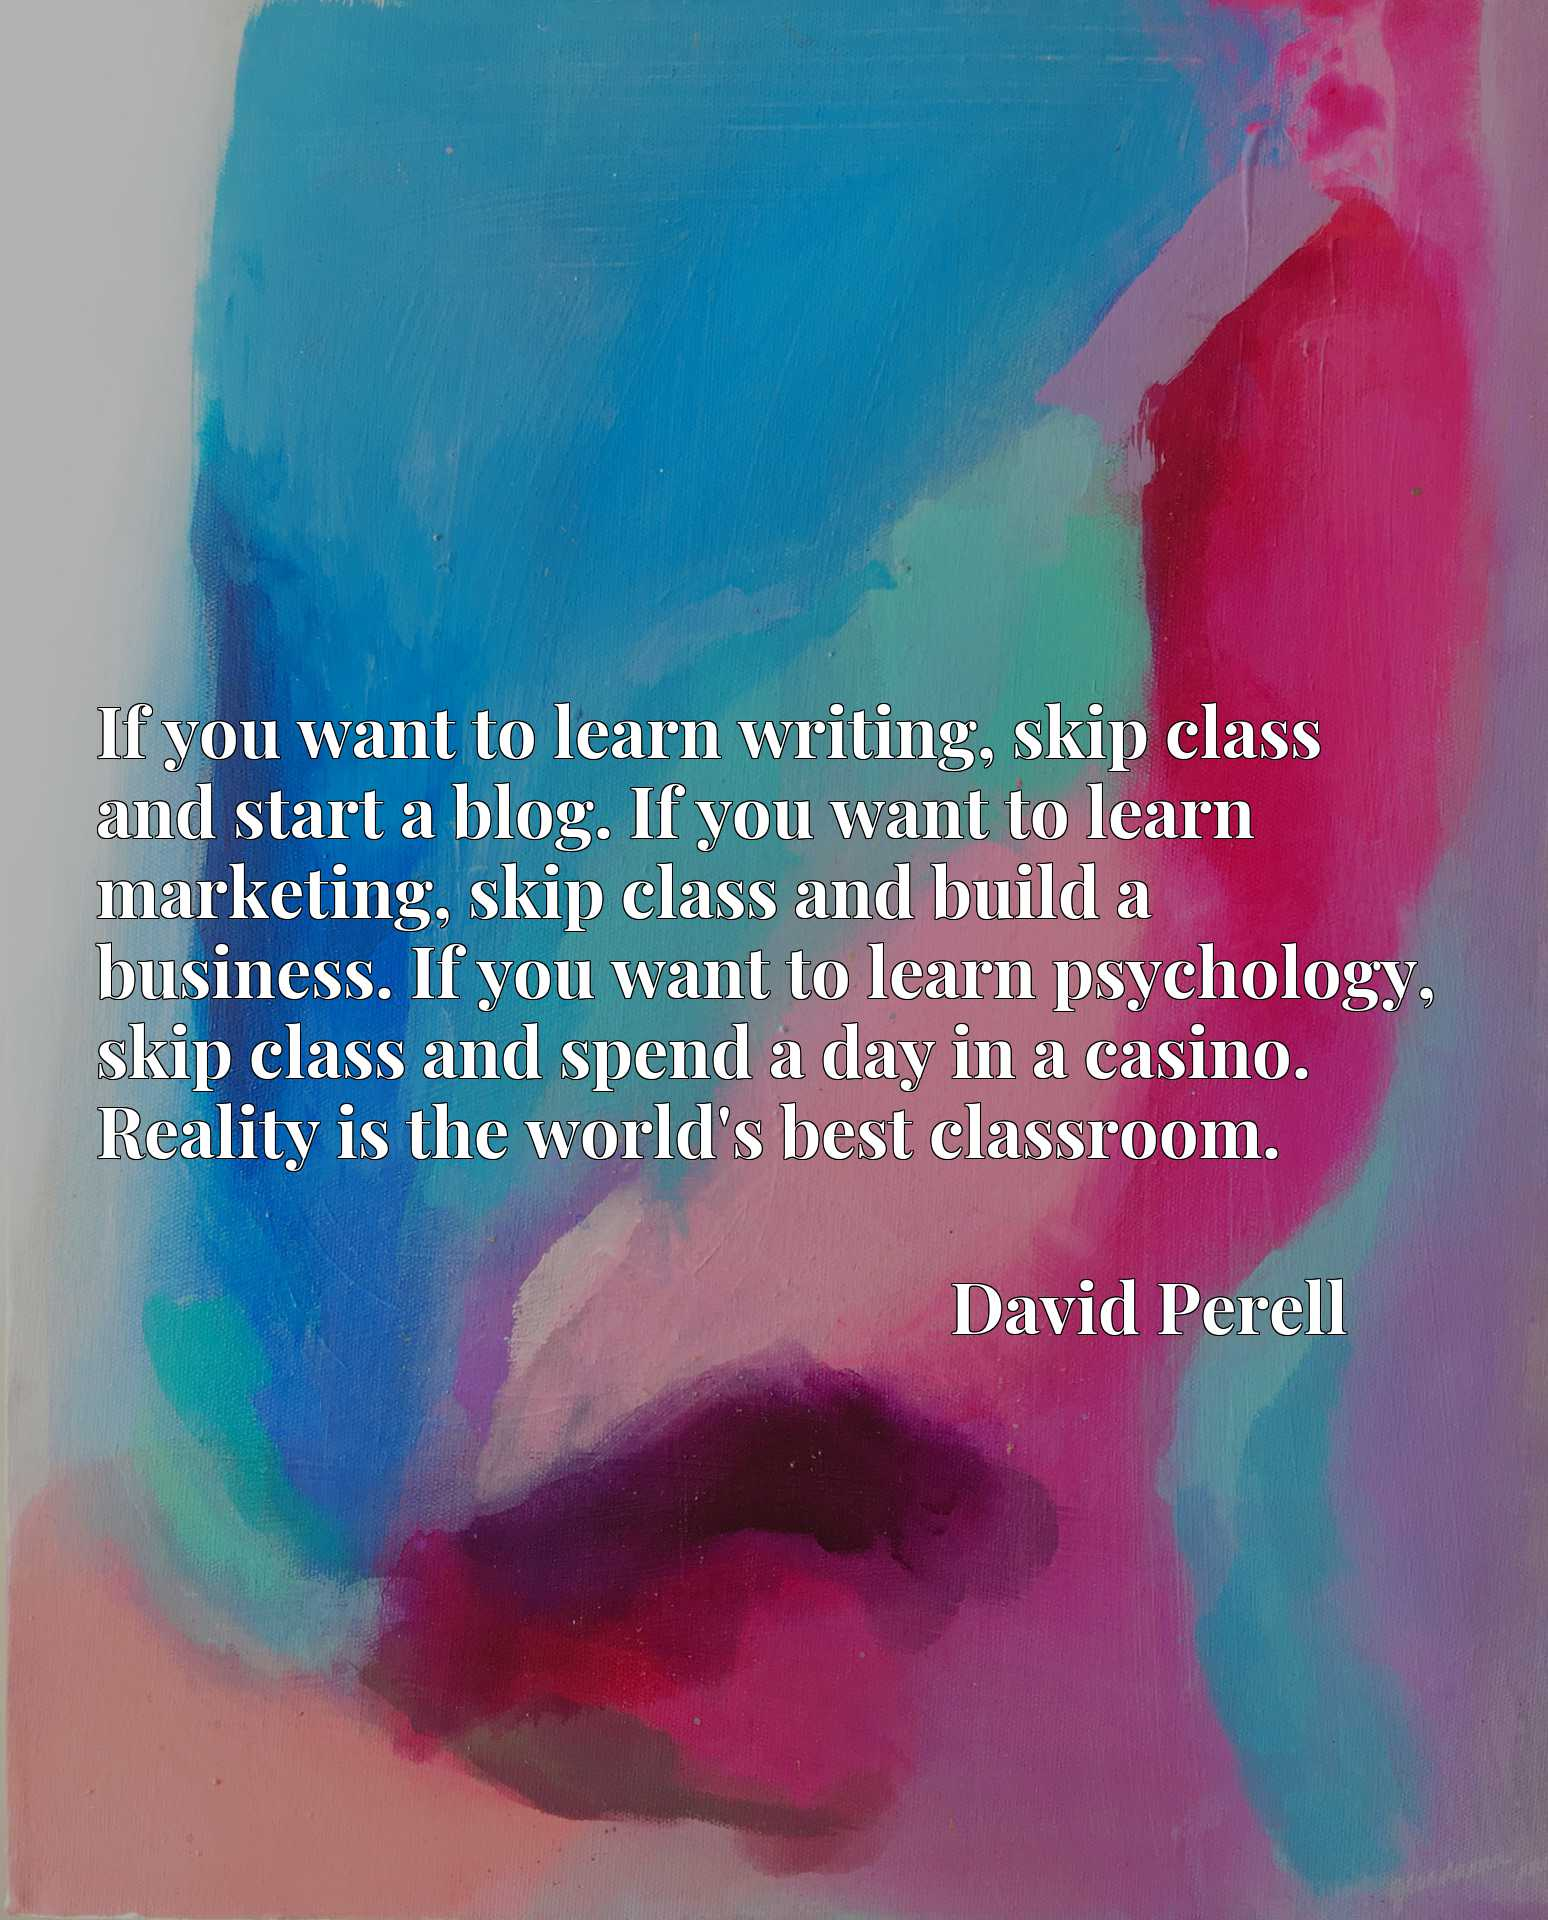 If you want to learn writing, skip class and start a blog. If you want to learn marketing, skip class and build a business. If you want to learn psychology, skip class and spend a day in a casino. Reality is the world's best classroom.